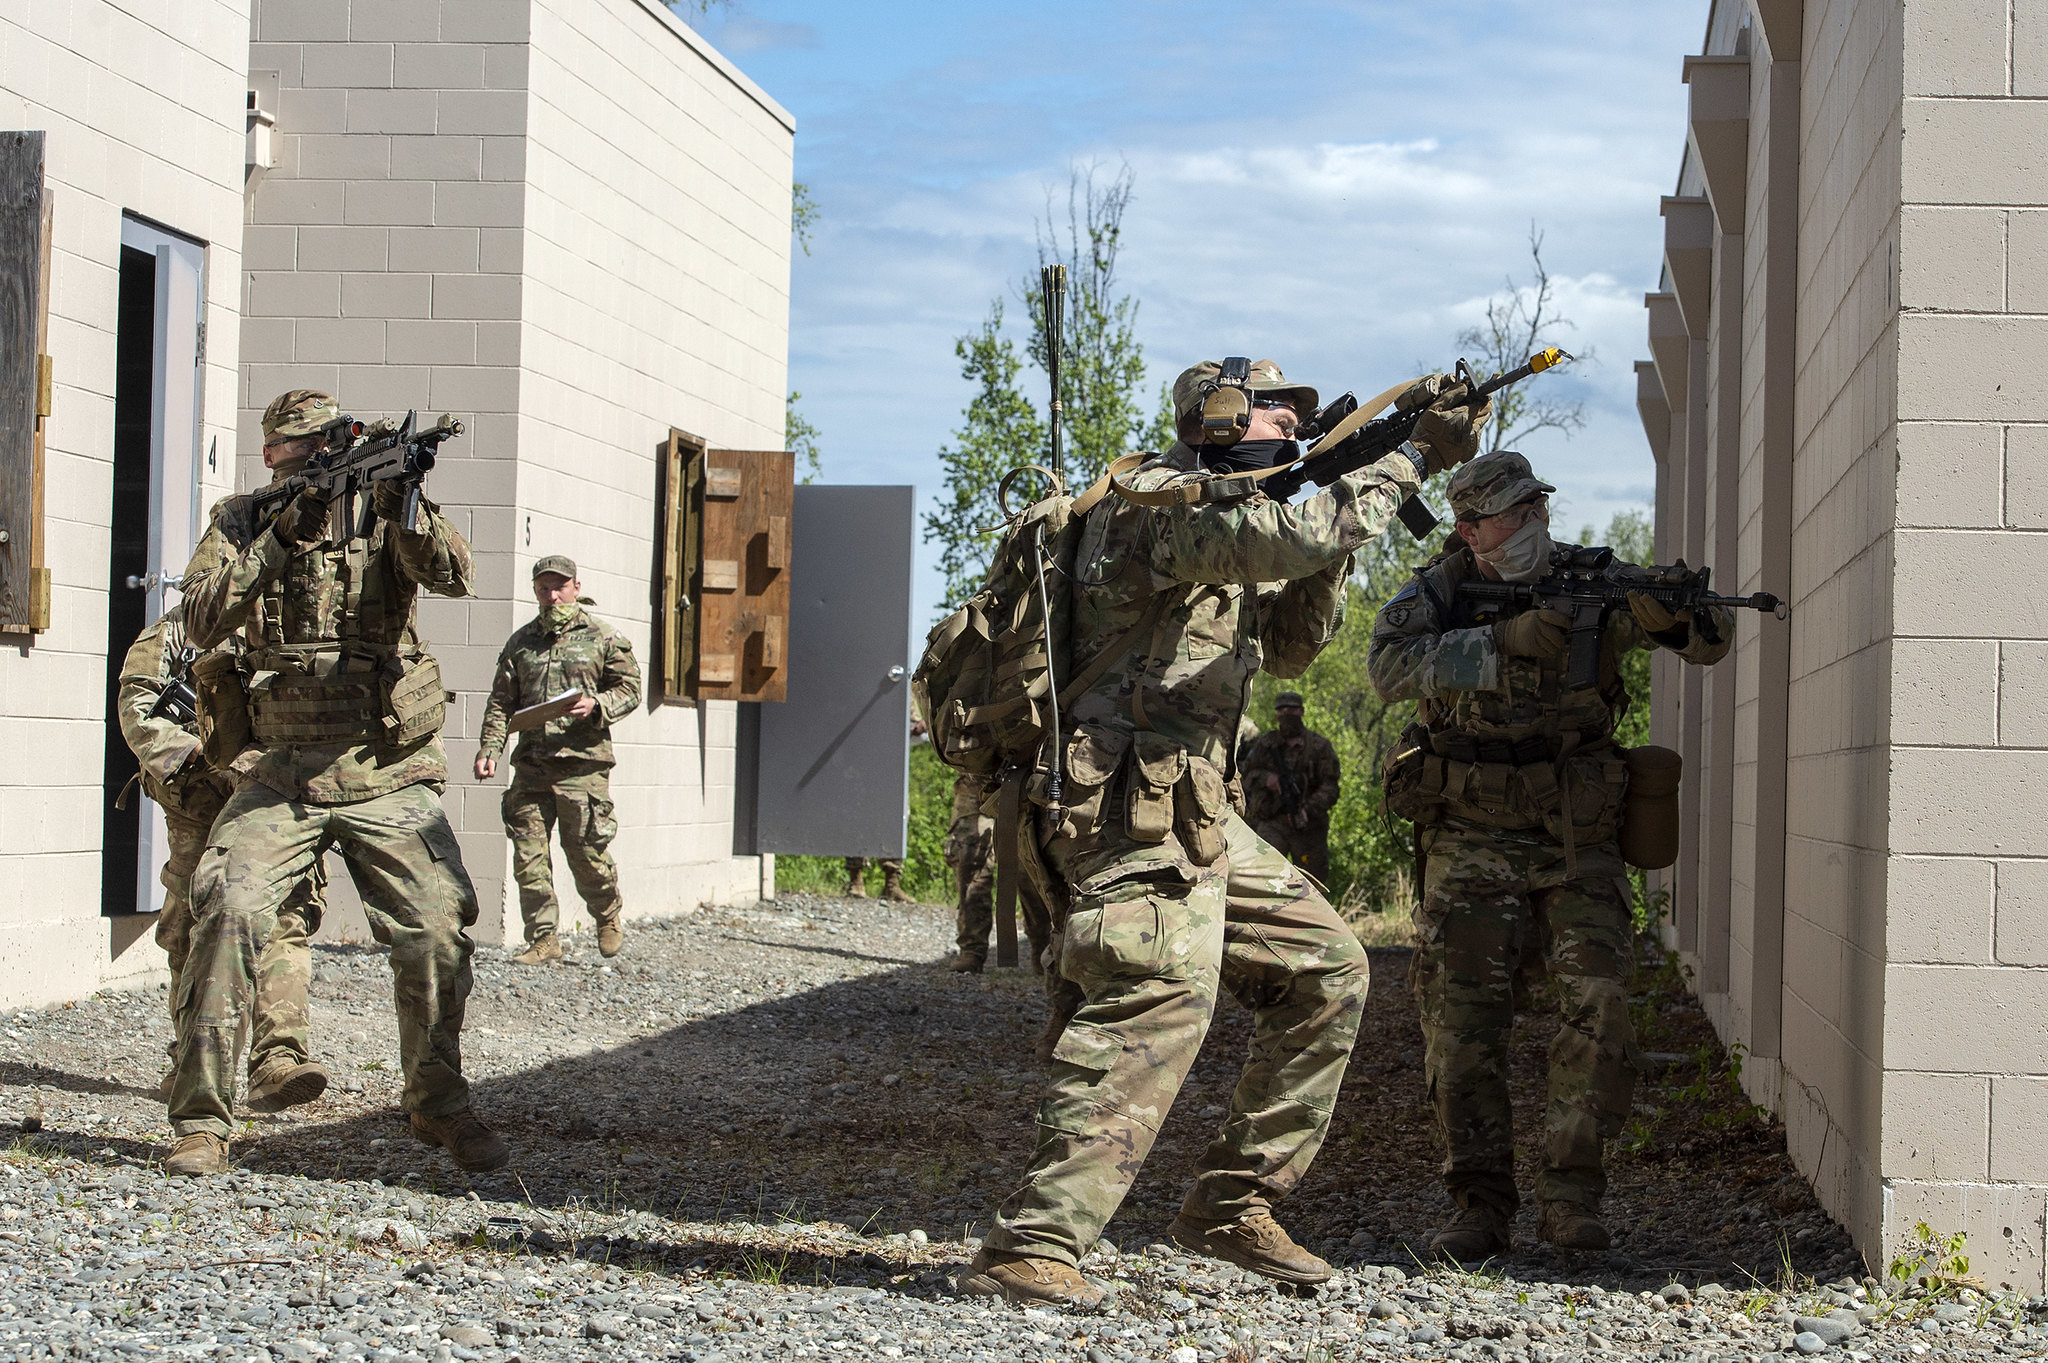 Paratroopers react to simulated enemy contact while clearing buildings May 20, 2020, during squad training at Joint Base Elmendorf-Richardson, Alaska. (Alejandro Peña/Air Force)